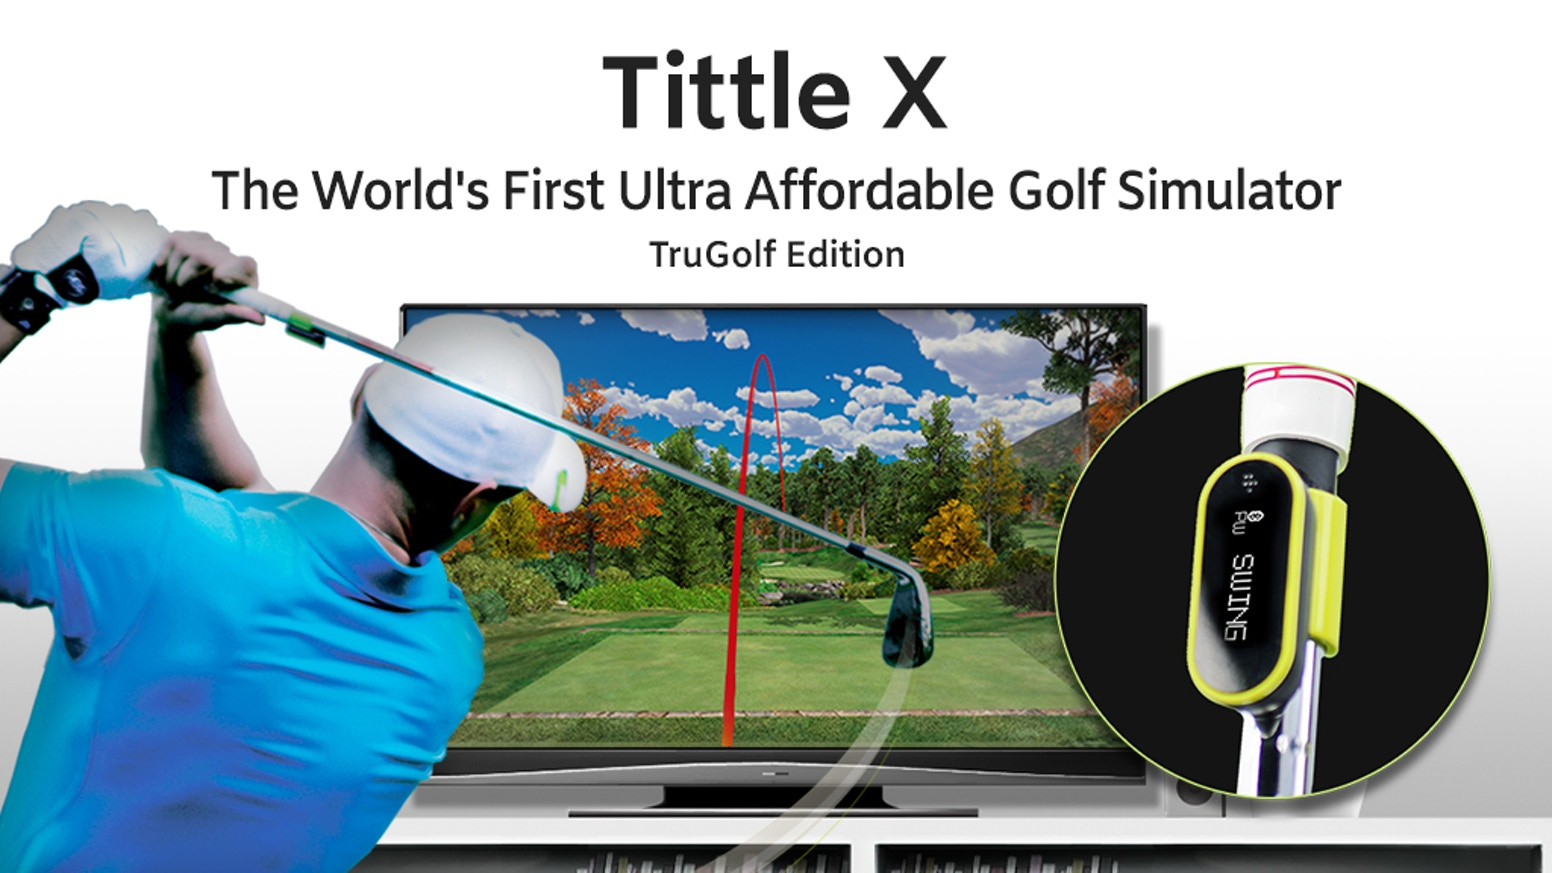 What if you can play golf anytime anywhere? Tittle X Golf Simulator TruGolf Edition makes life-like sim golf accessible to everyone.